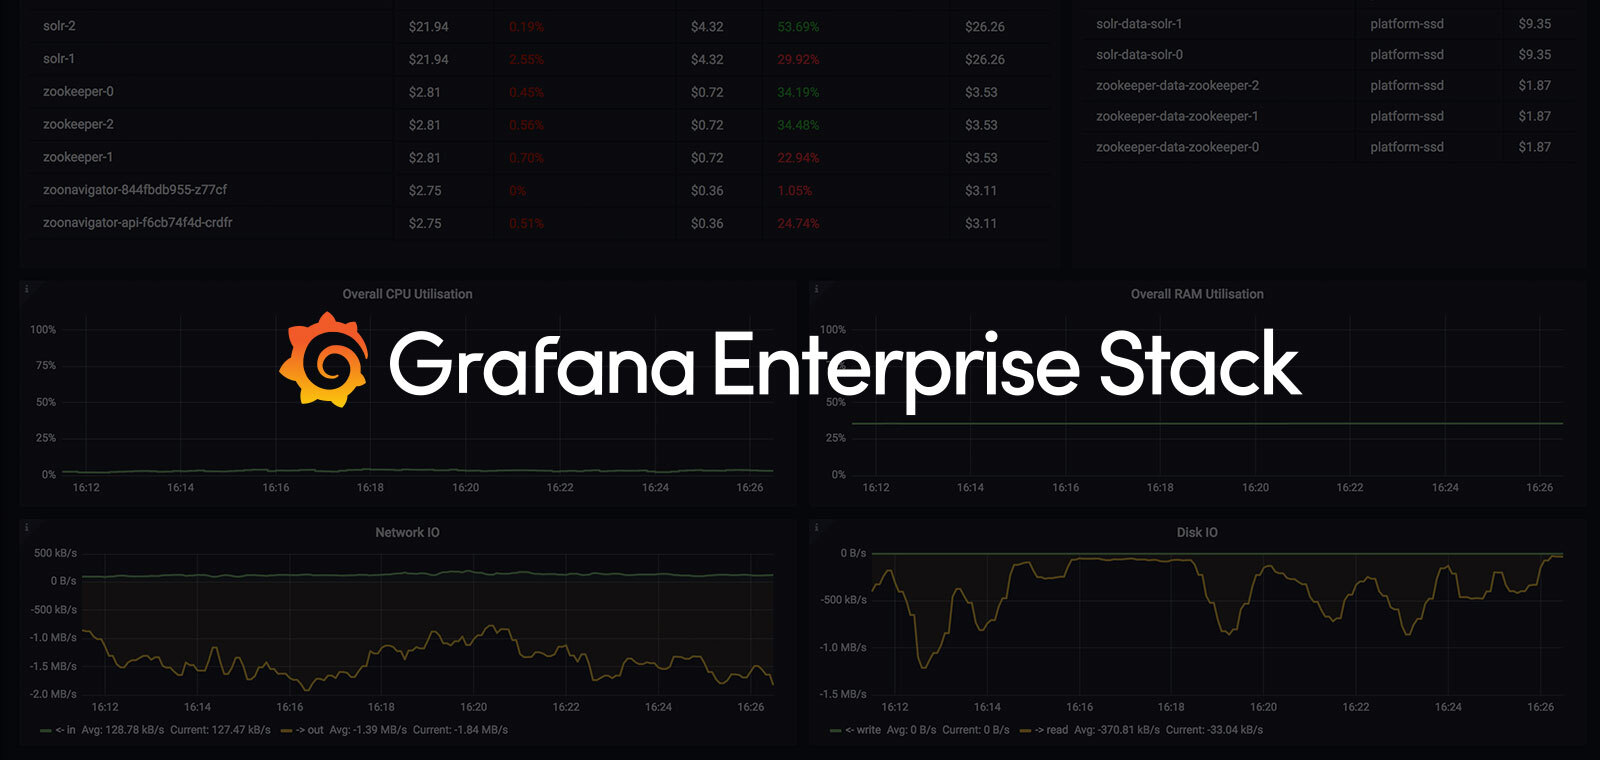 Erafana Enterprise Stack